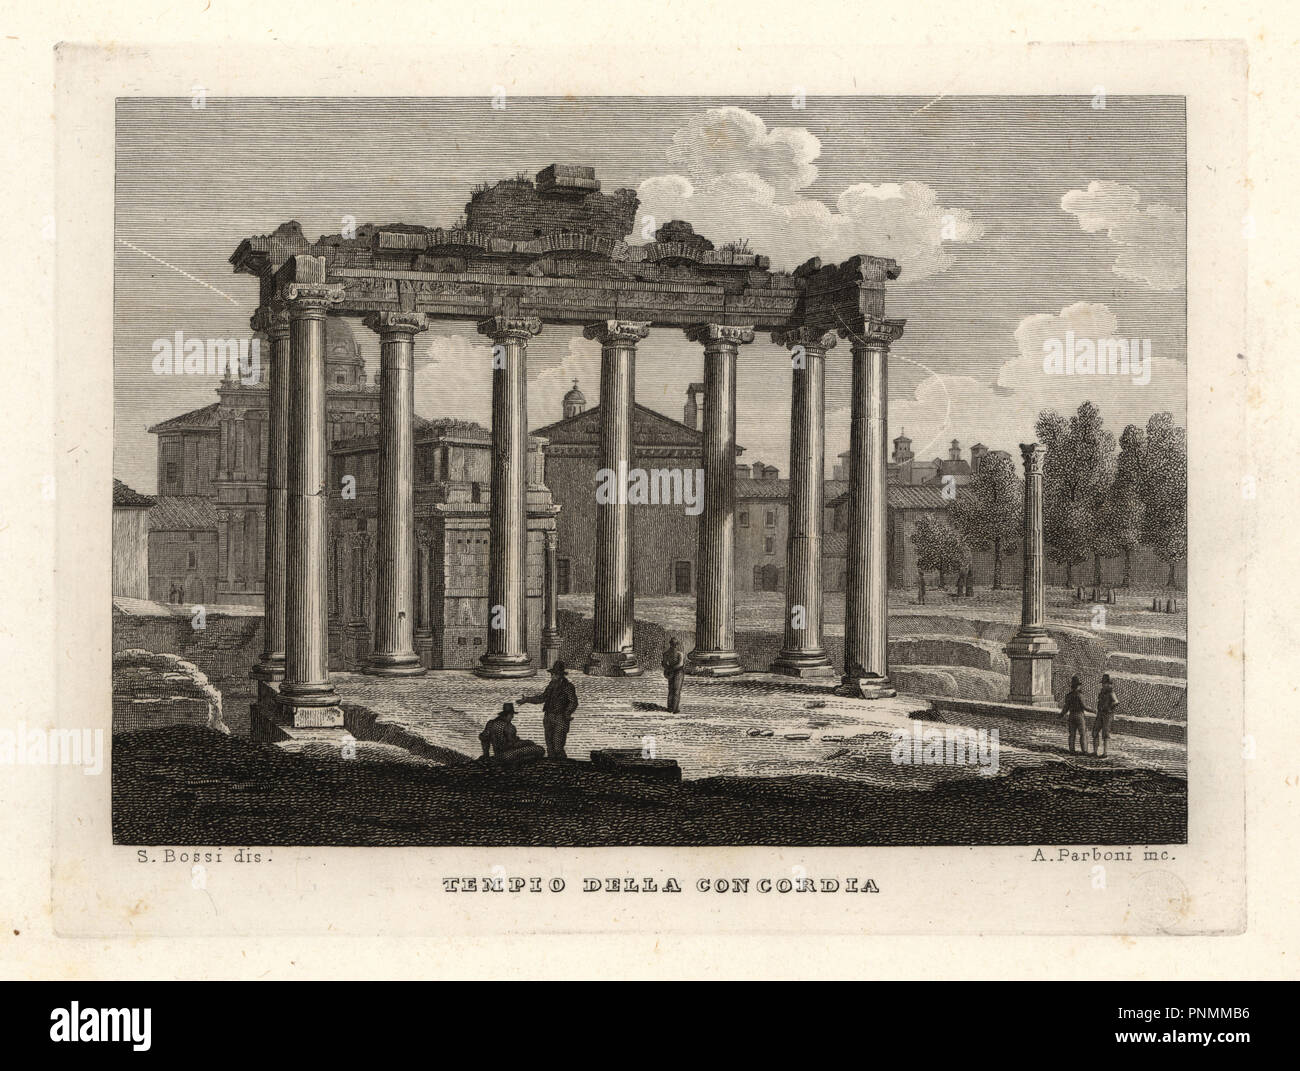 View of the Temple of Concord, Tempio della Concordia, Rome. Copperplate engraving by A. Parboni after an illustration by Sylvestro Bossi from Achille Parboni's New Collection of Principal Views Ancient and Modern of the City of Rome, 1830. - Stock Image